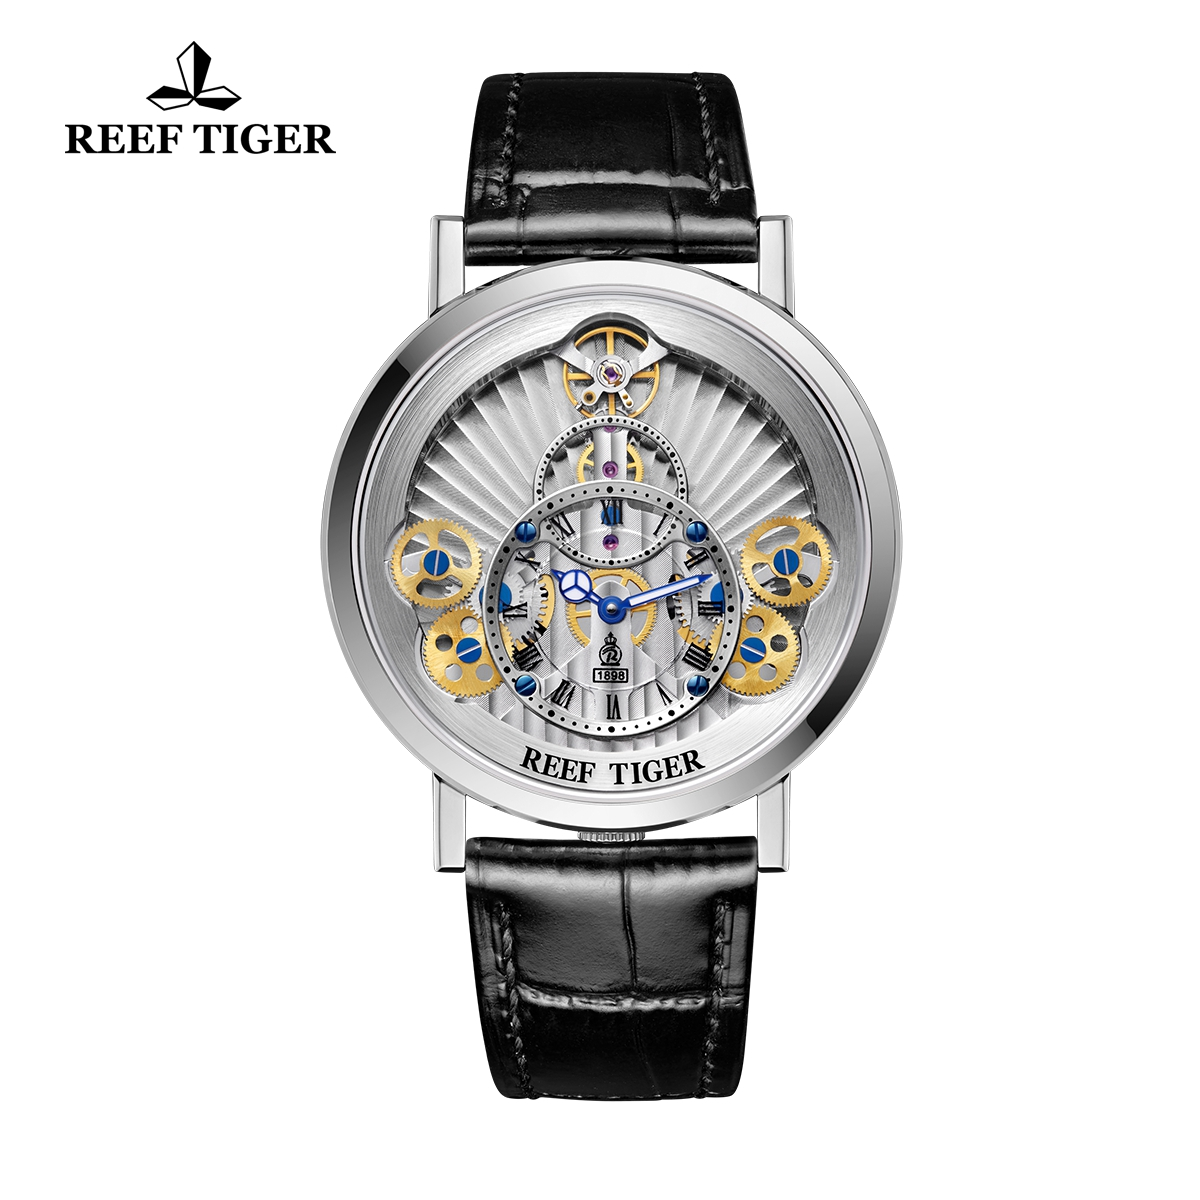 Reef Tiger Artist Rotation Casual Fashion Watches Steel Leather Strap Quartz Watch For Men RGA1958-YSB